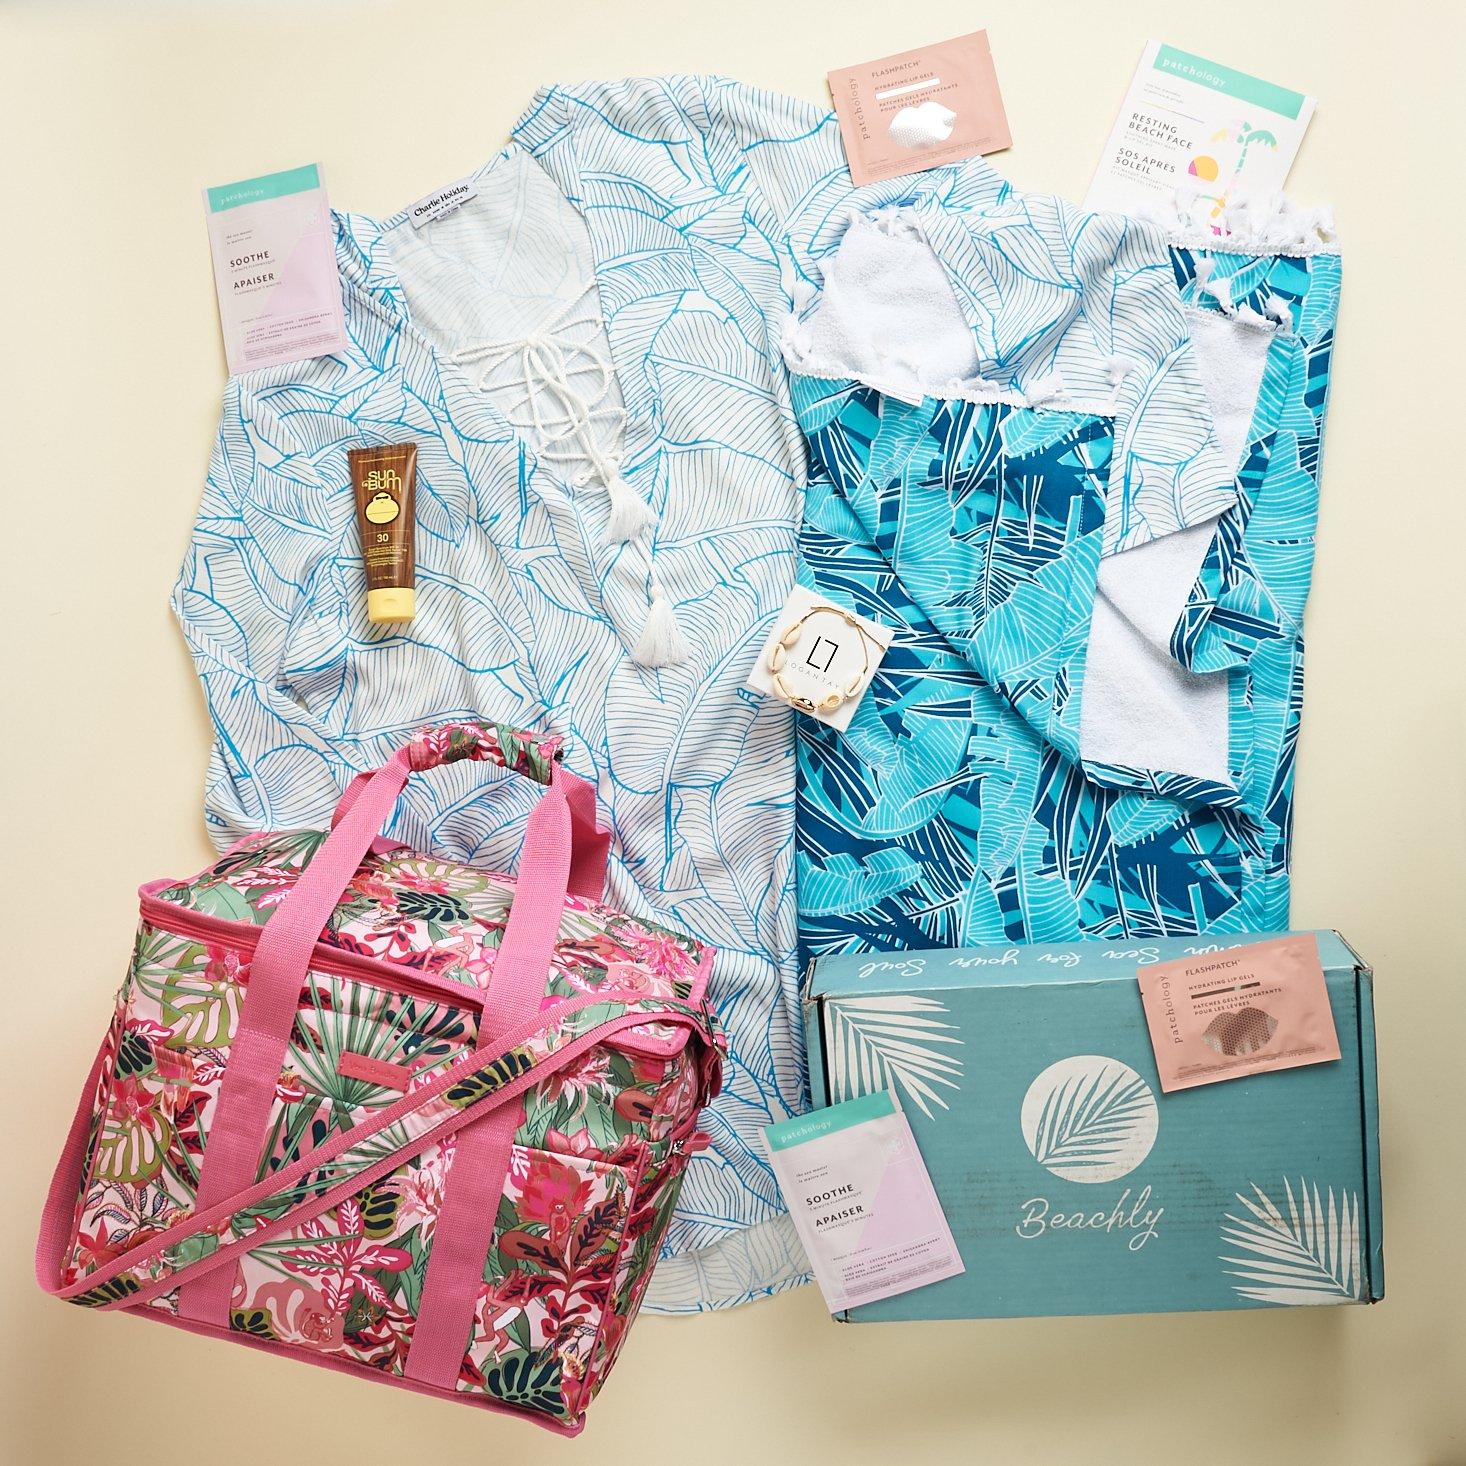 Beachly Lifestyle Box Review – Summer 2021